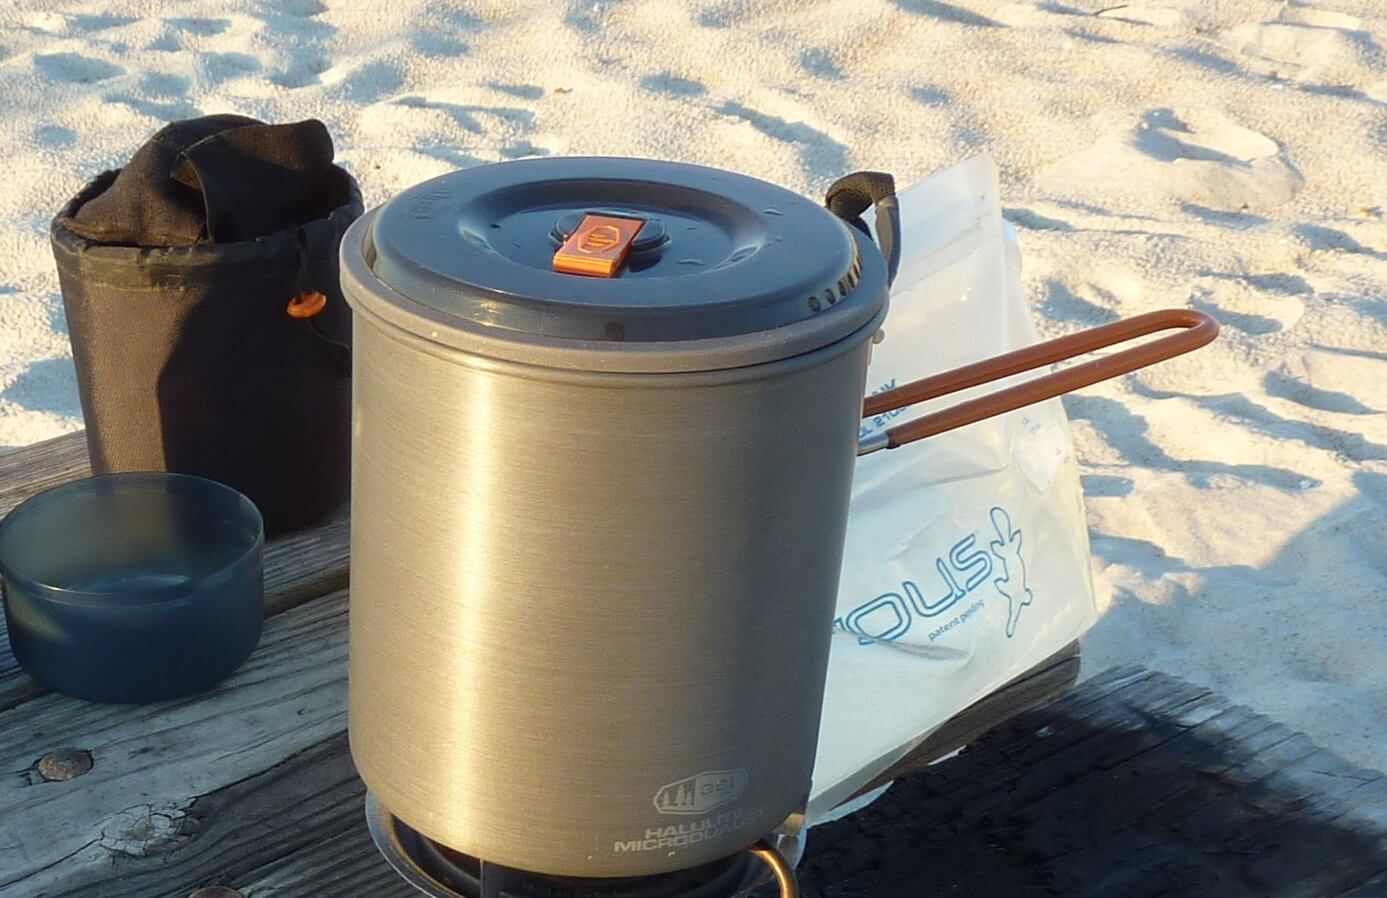 camp stove at elevation